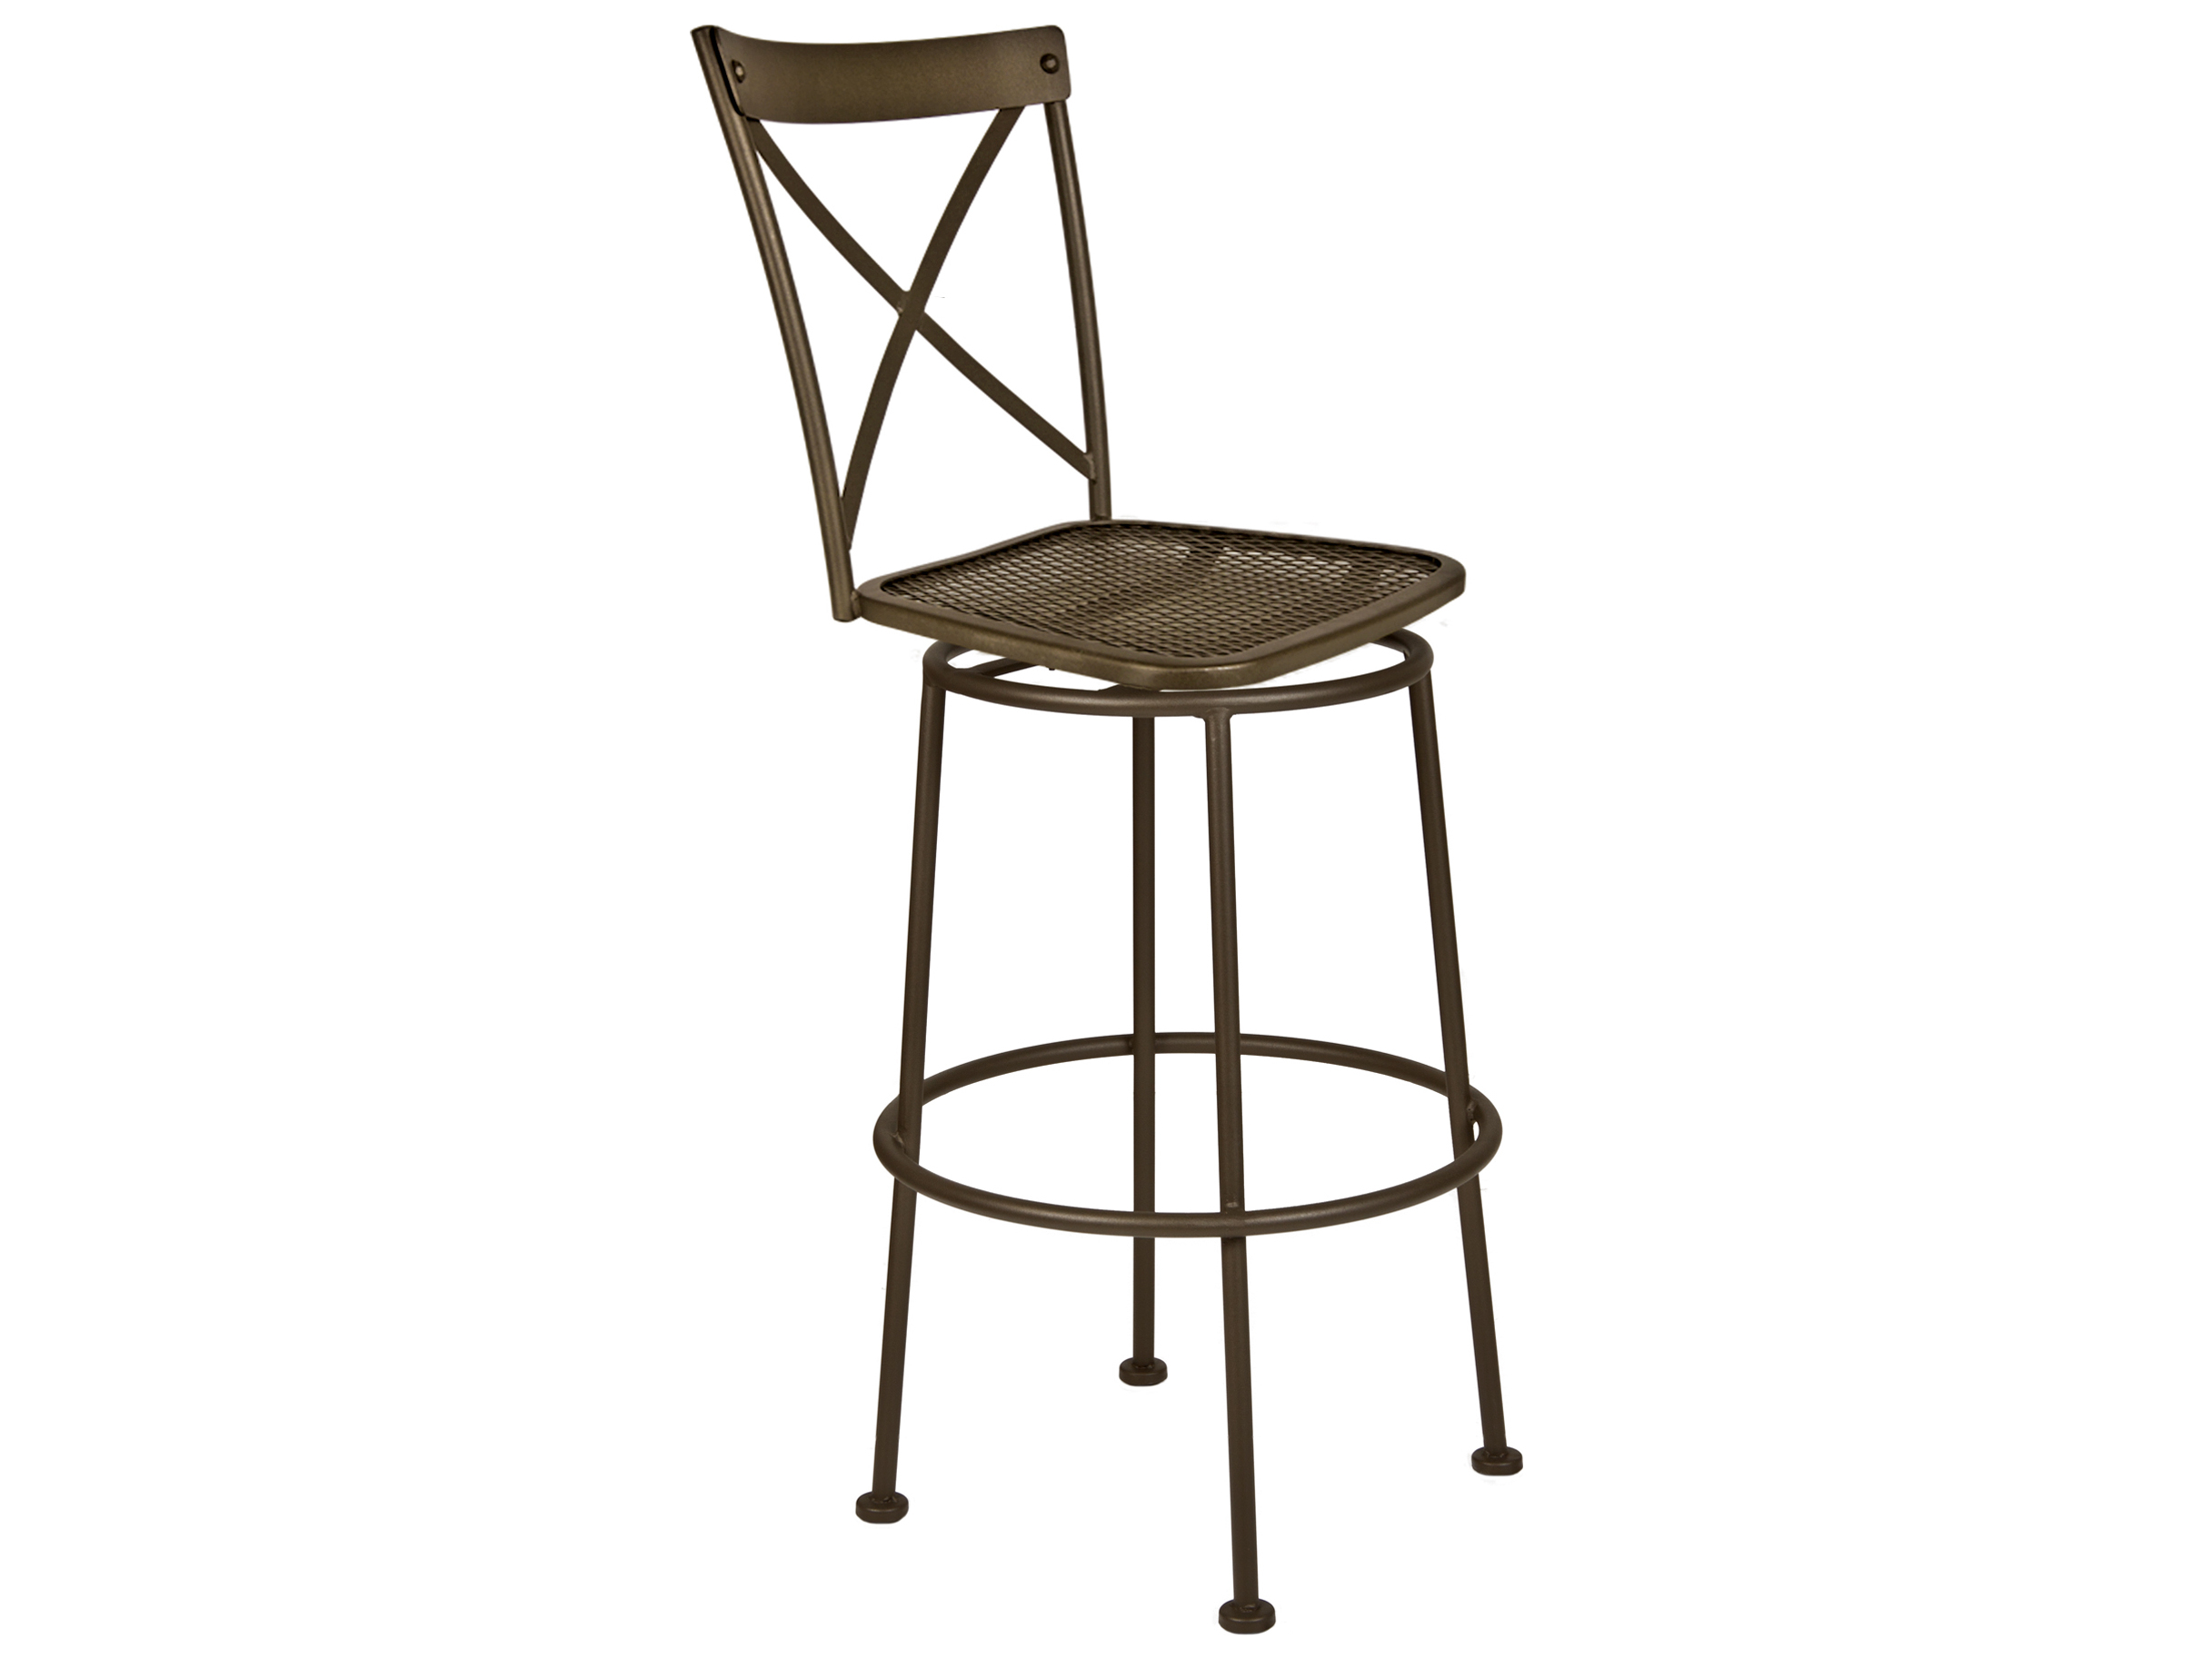 Wrought Iron Bar Stool Pine Barstool 25 Quot Wrought Iron Bar Stools At 1stdibs Wrought Iron